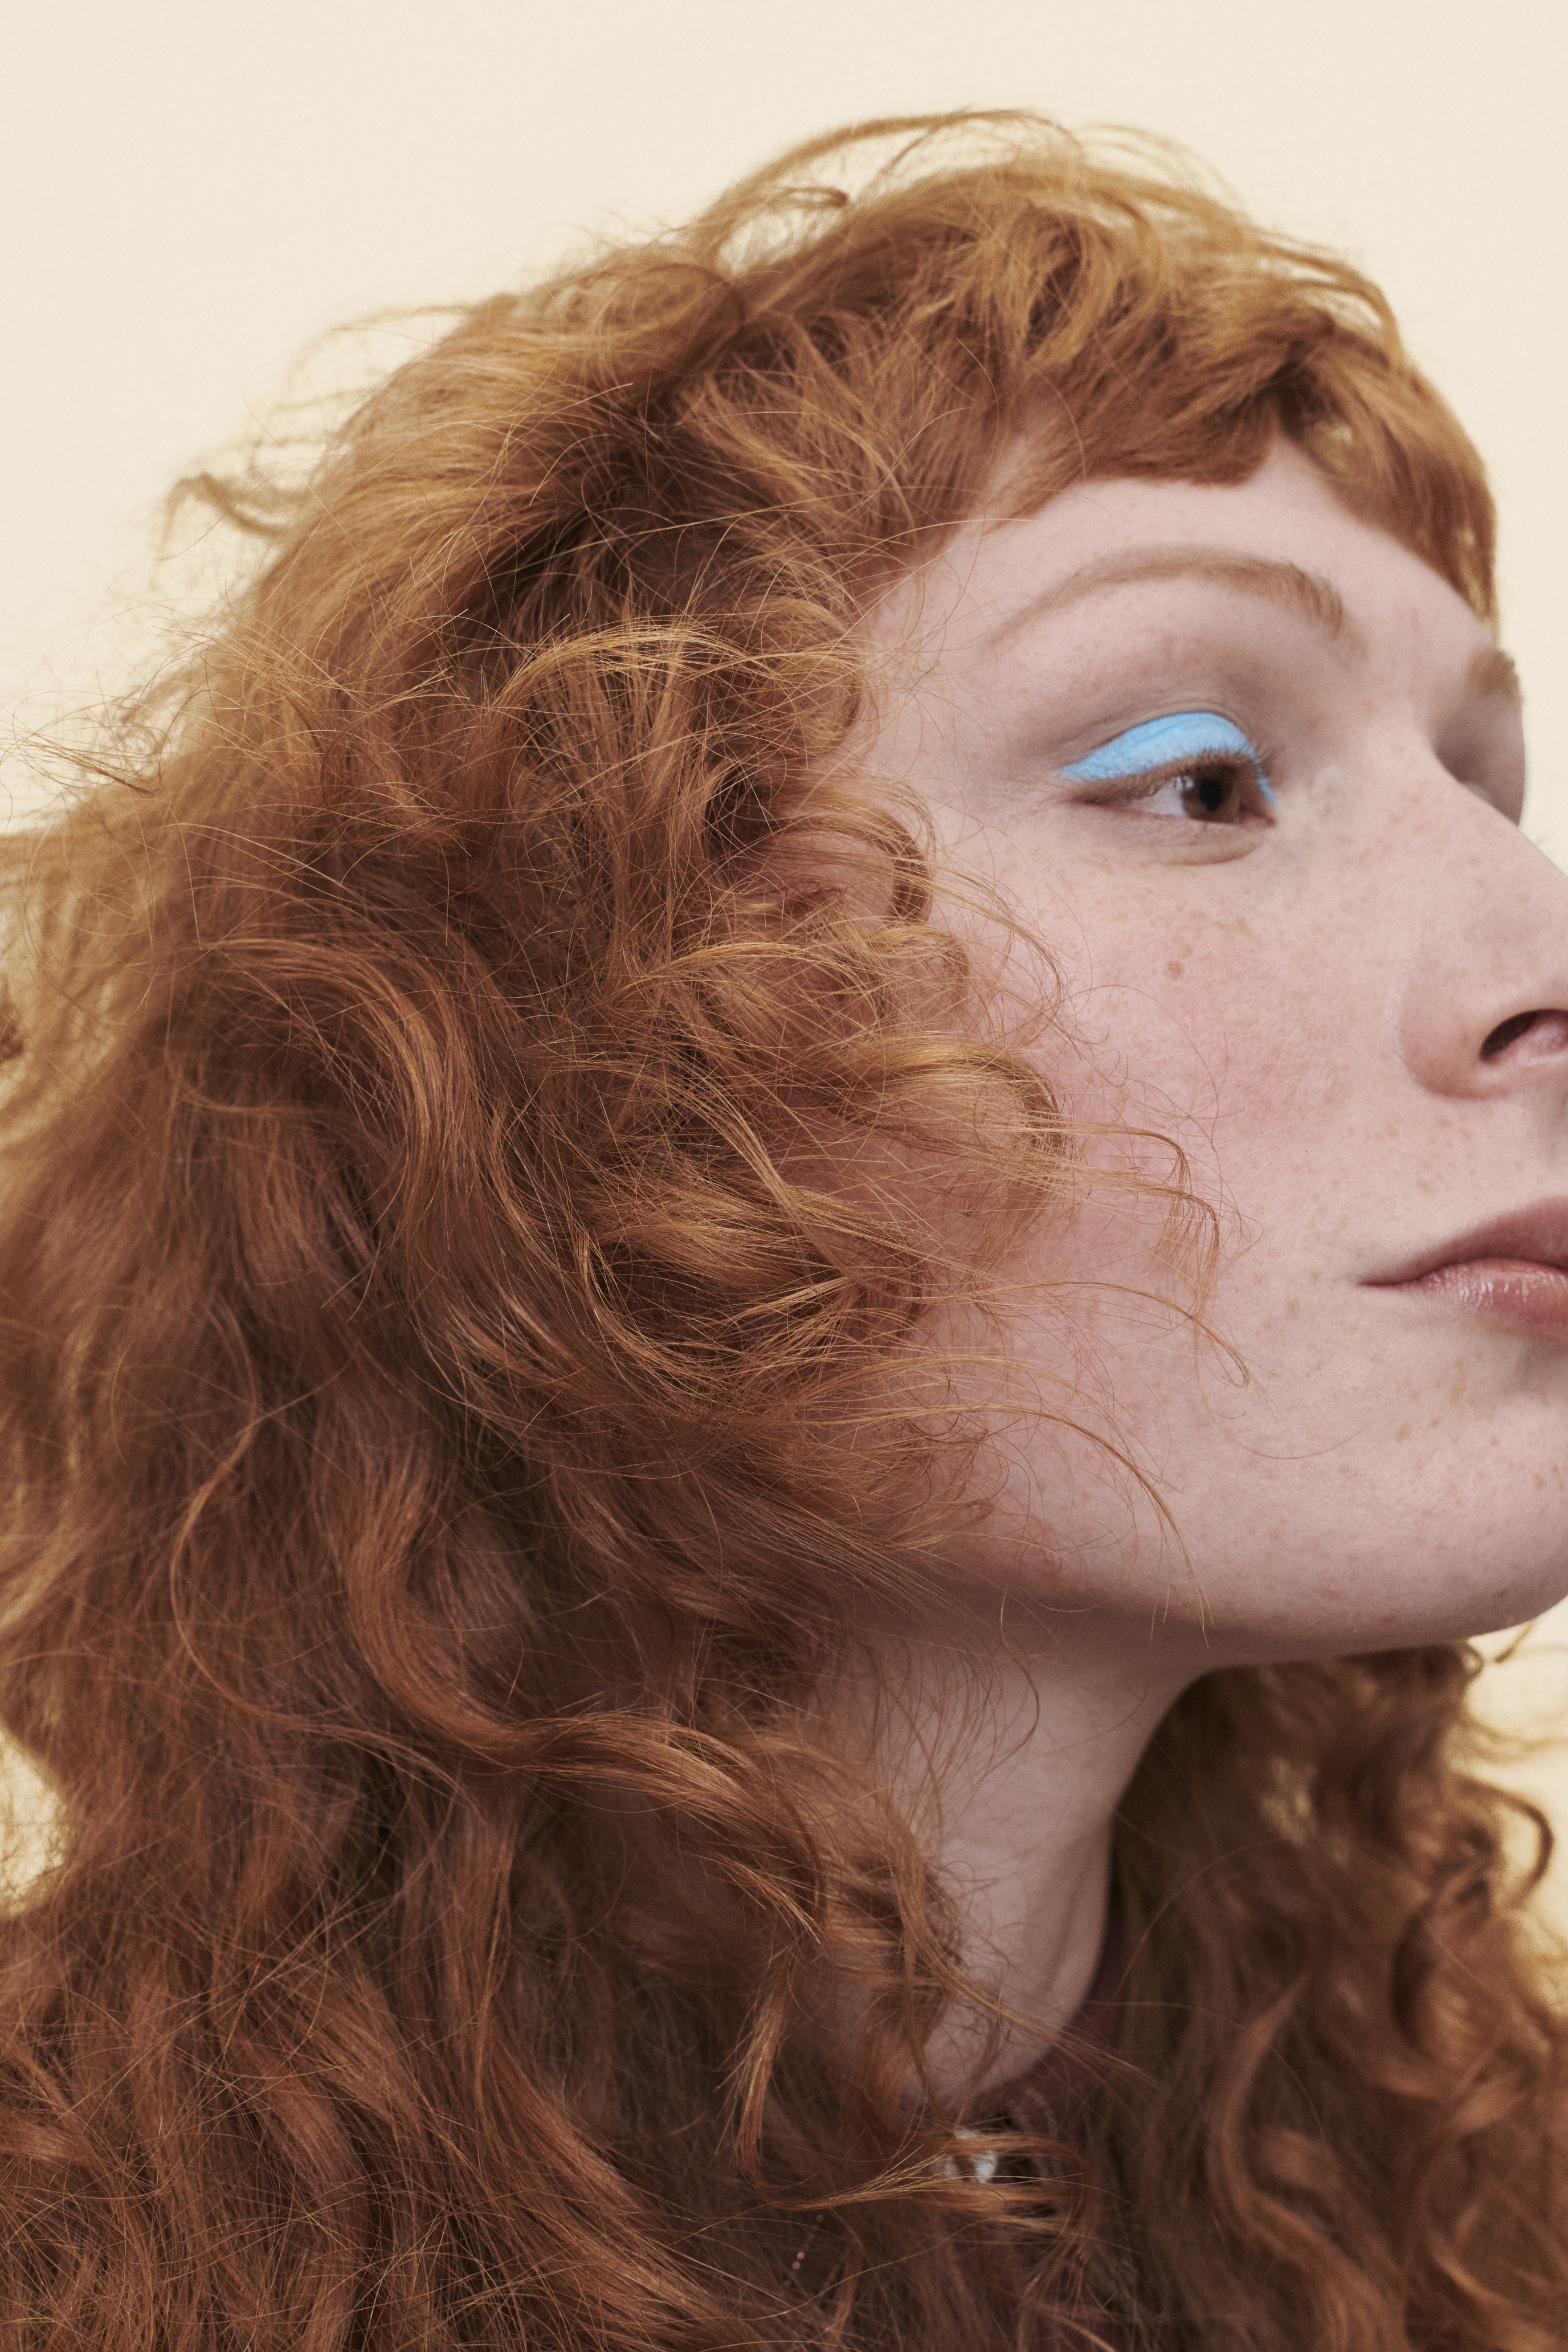 curly hair woman with red bangs